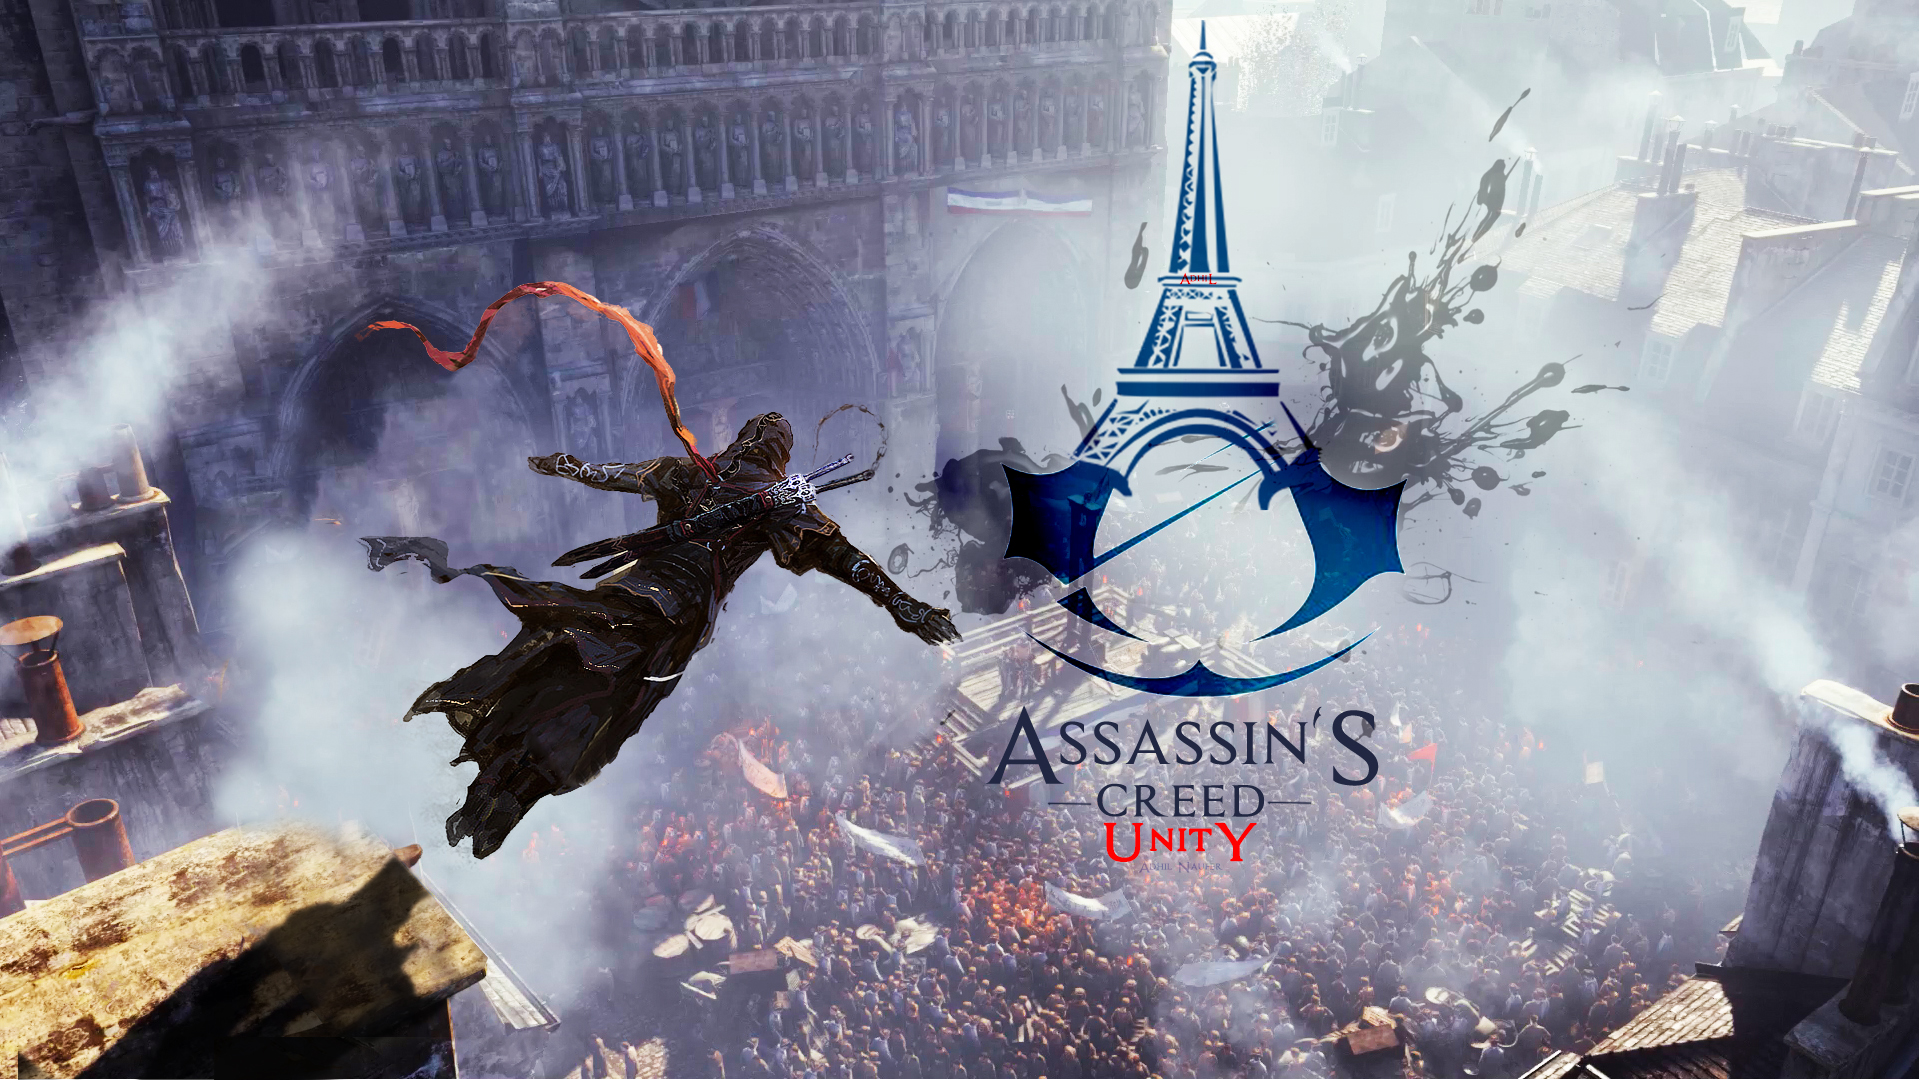 Assassin's Creed Unity flooded with positive reviews on